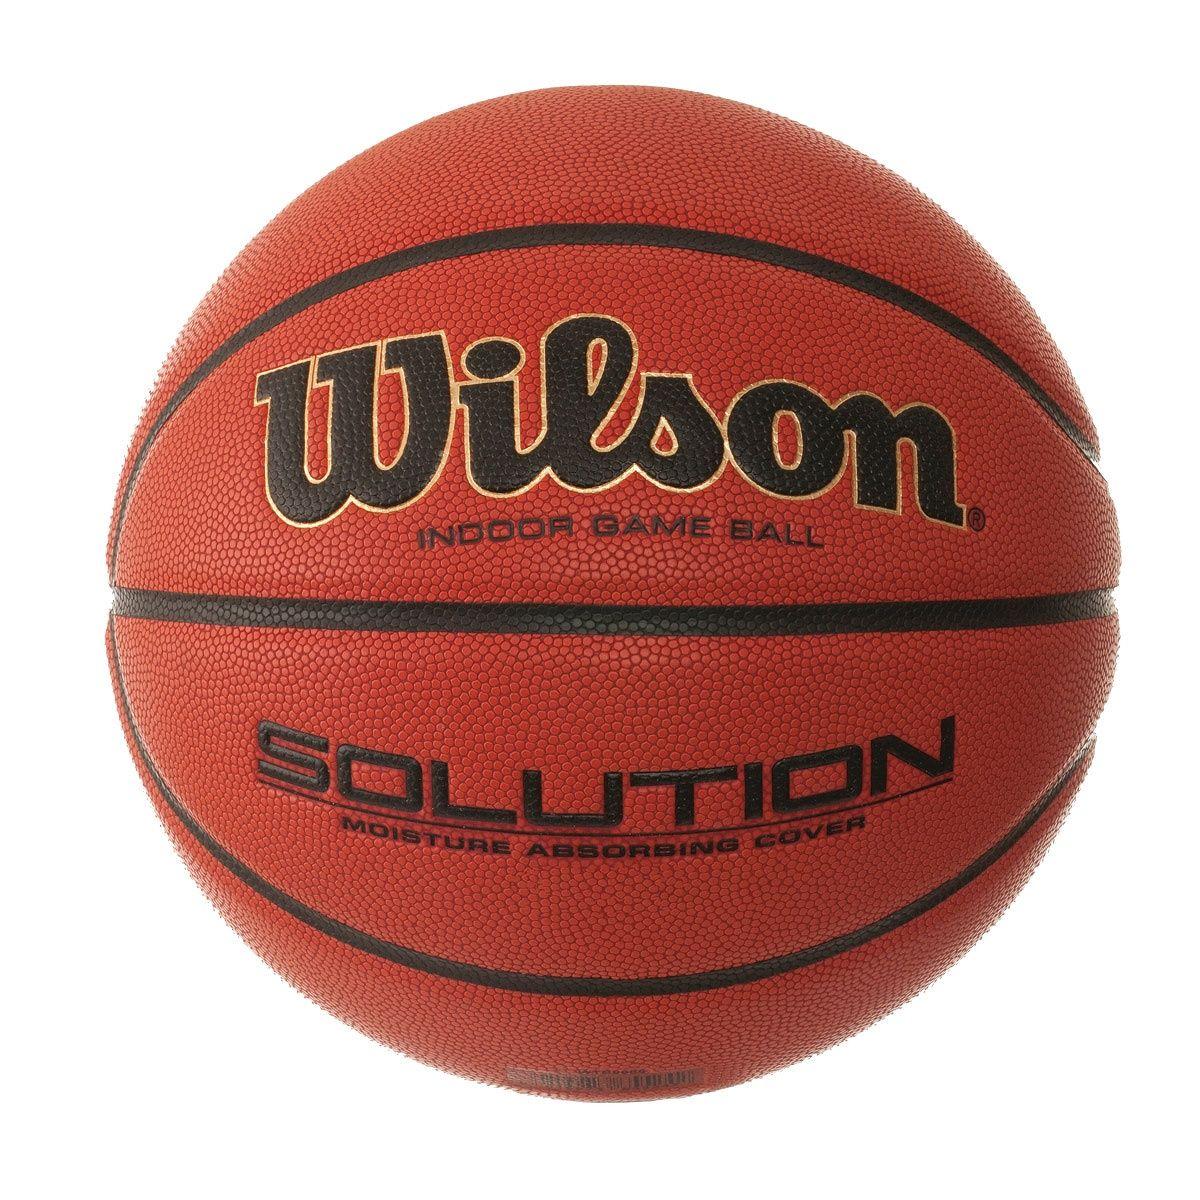 Wilson Solution Basketball - Package of 5 Balls